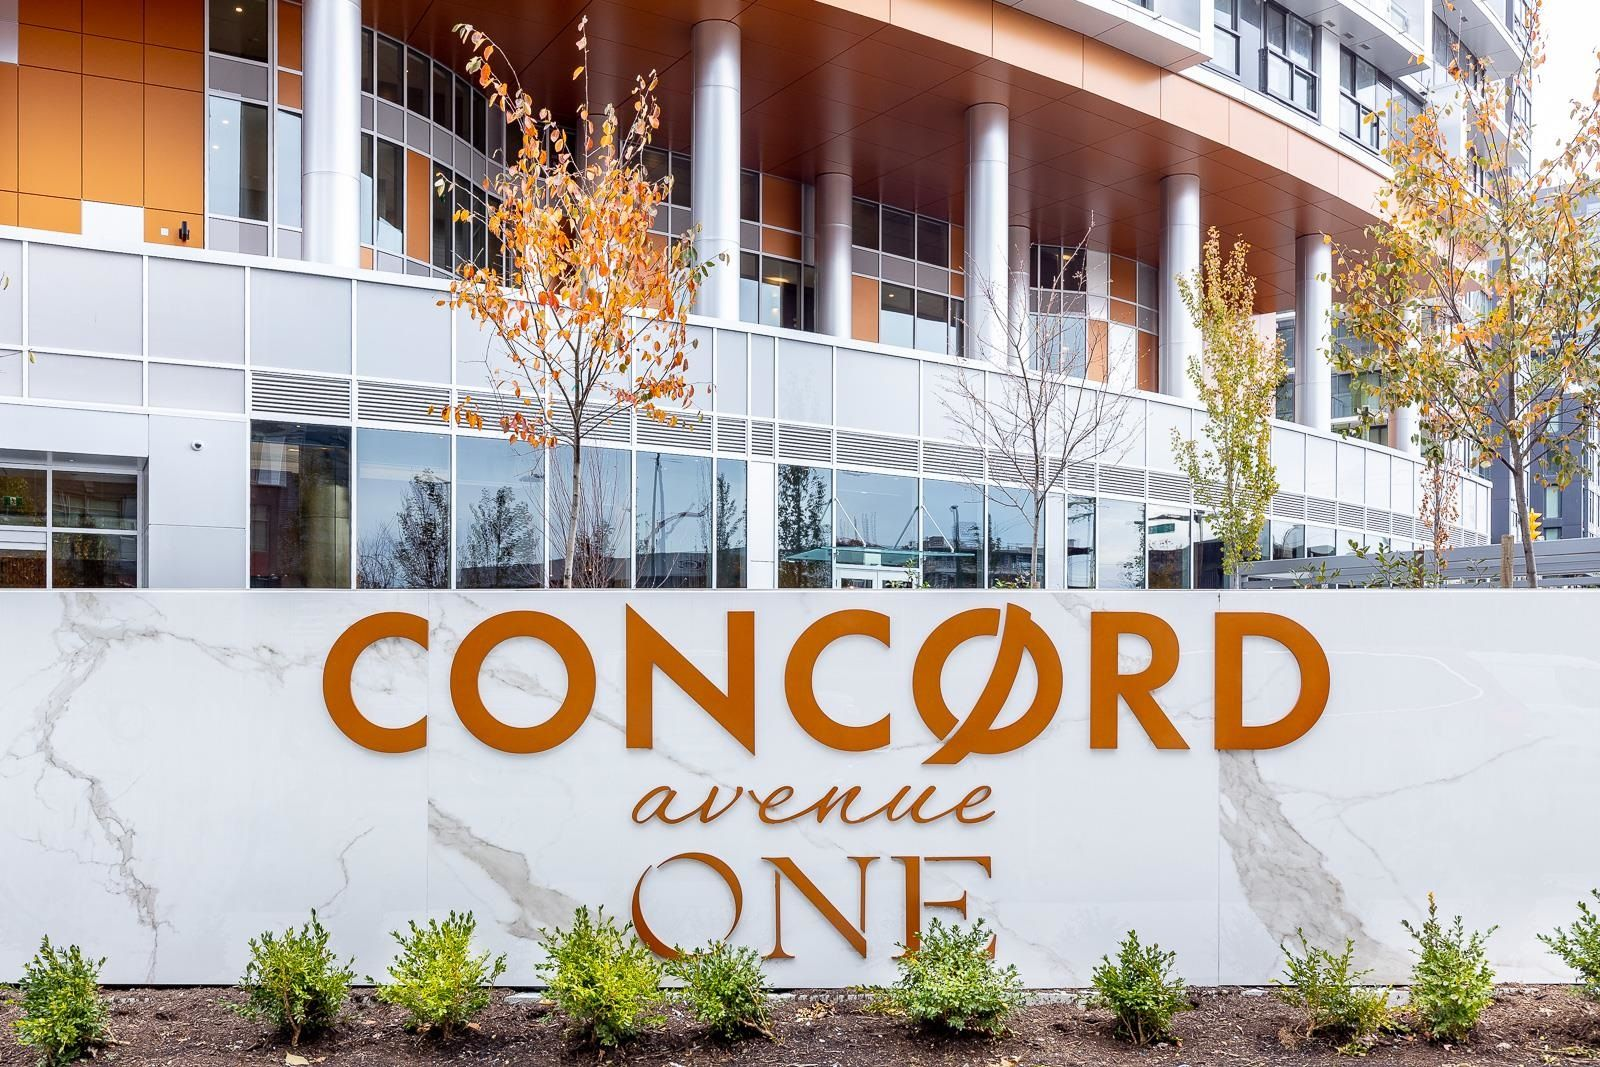 """Main Photo: 1214 1768 COOK Street in Vancouver: False Creek Condo for sale in """"Venue One"""" (Vancouver West)  : MLS®# R2625843"""